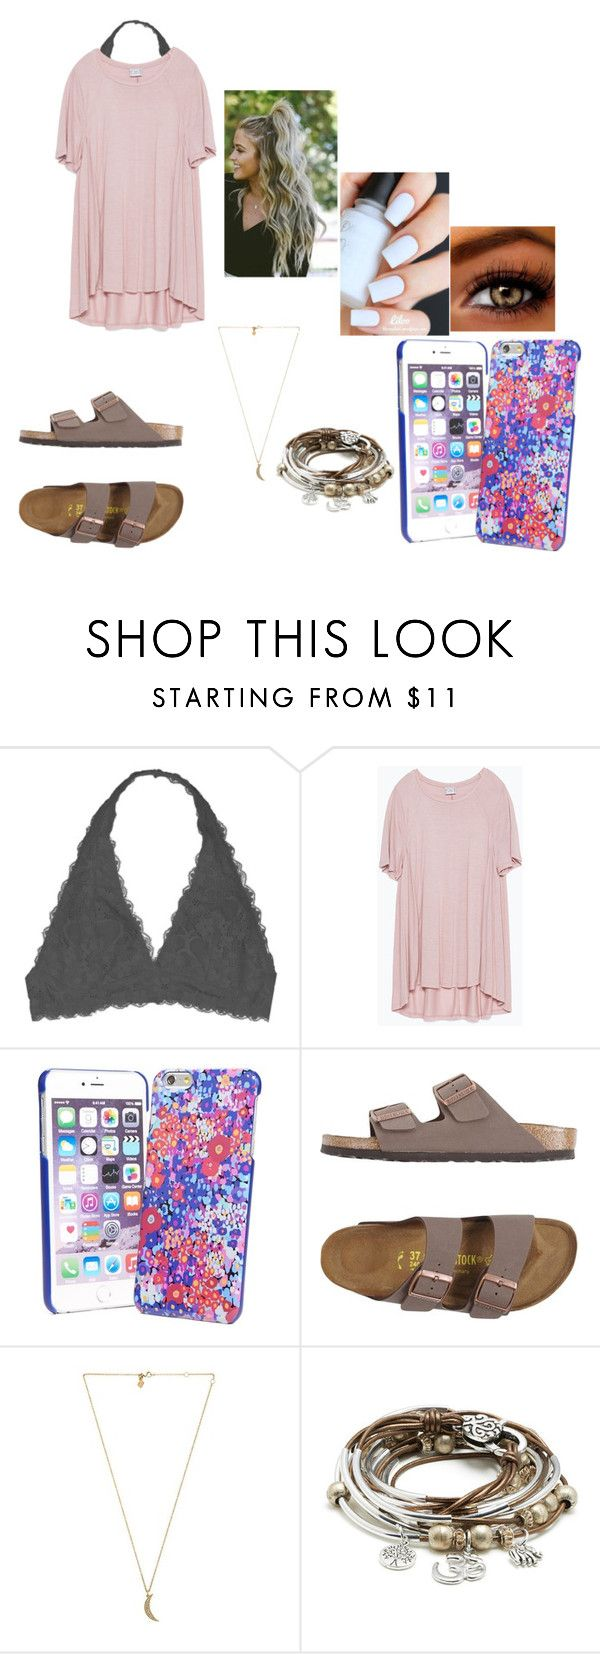 """""""I had Cookout and Pizza today. I'm stuffed"""" by chanel-xoxo123 on Polyvore featuring Youmita, Zara, Vera Bradley, T3, Birkenstock, Rebecca Minkoff and Lizzy James"""